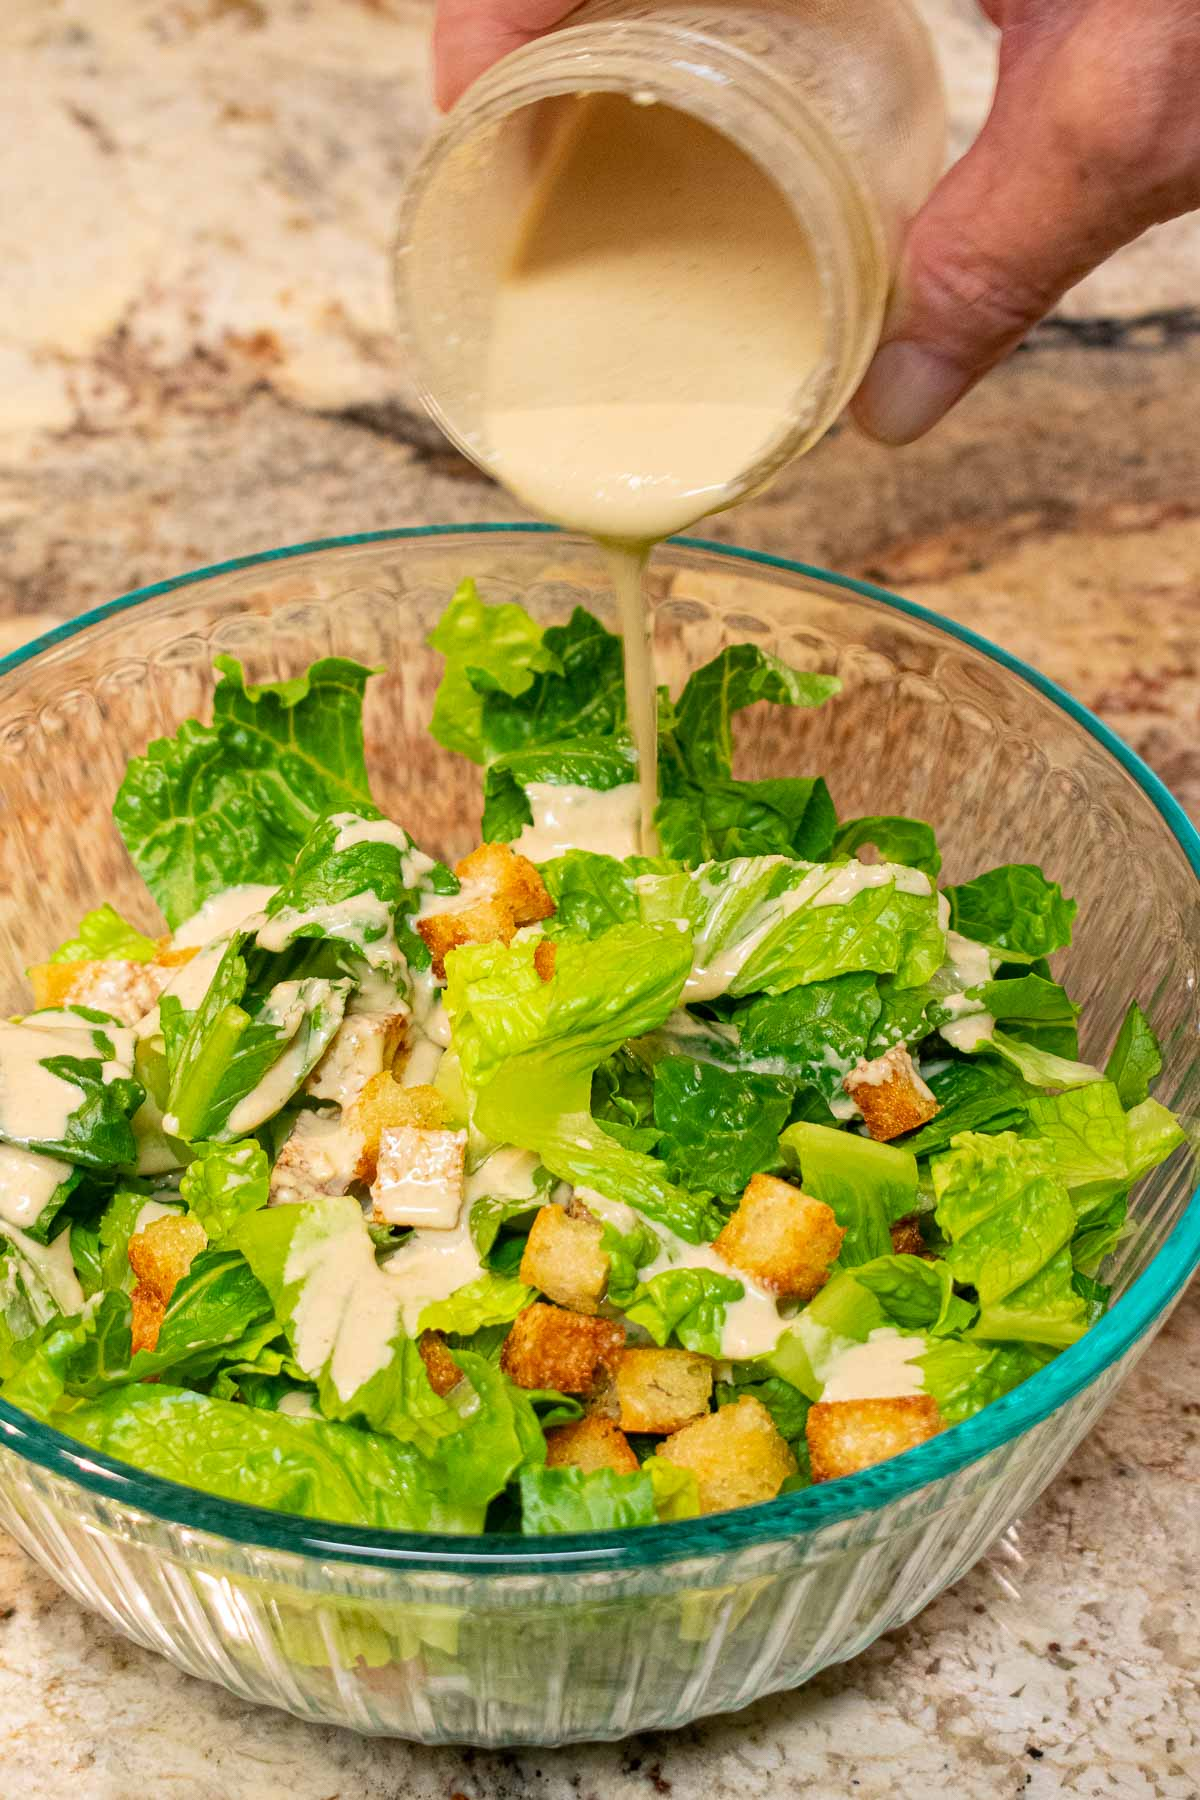 Caesar dressing being poured over romaine lettuce in a bowl.